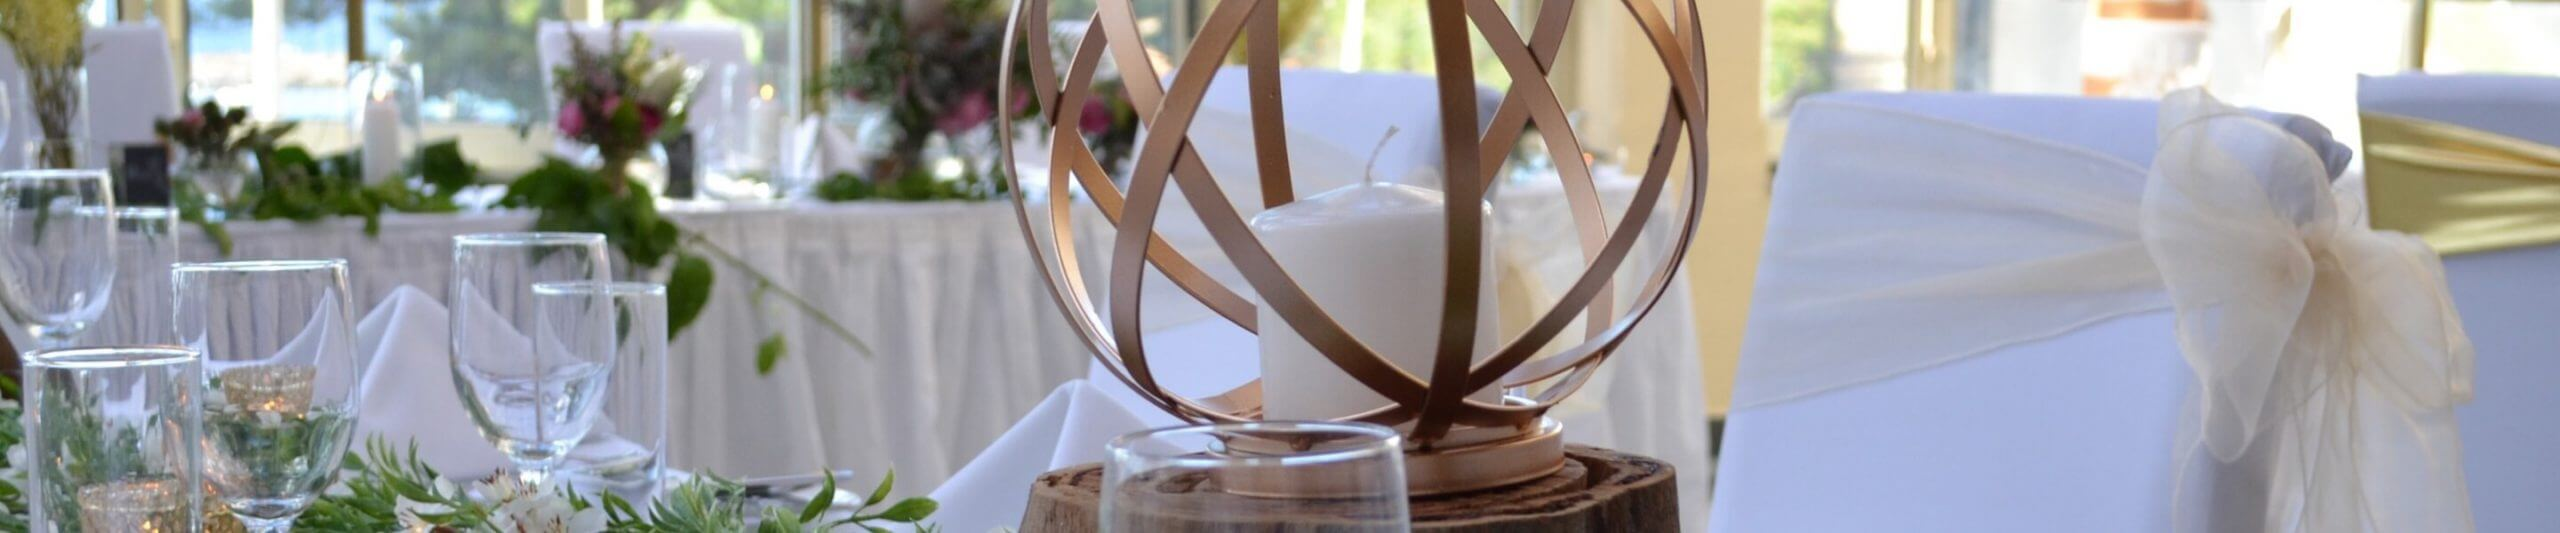 tables with focal point candle